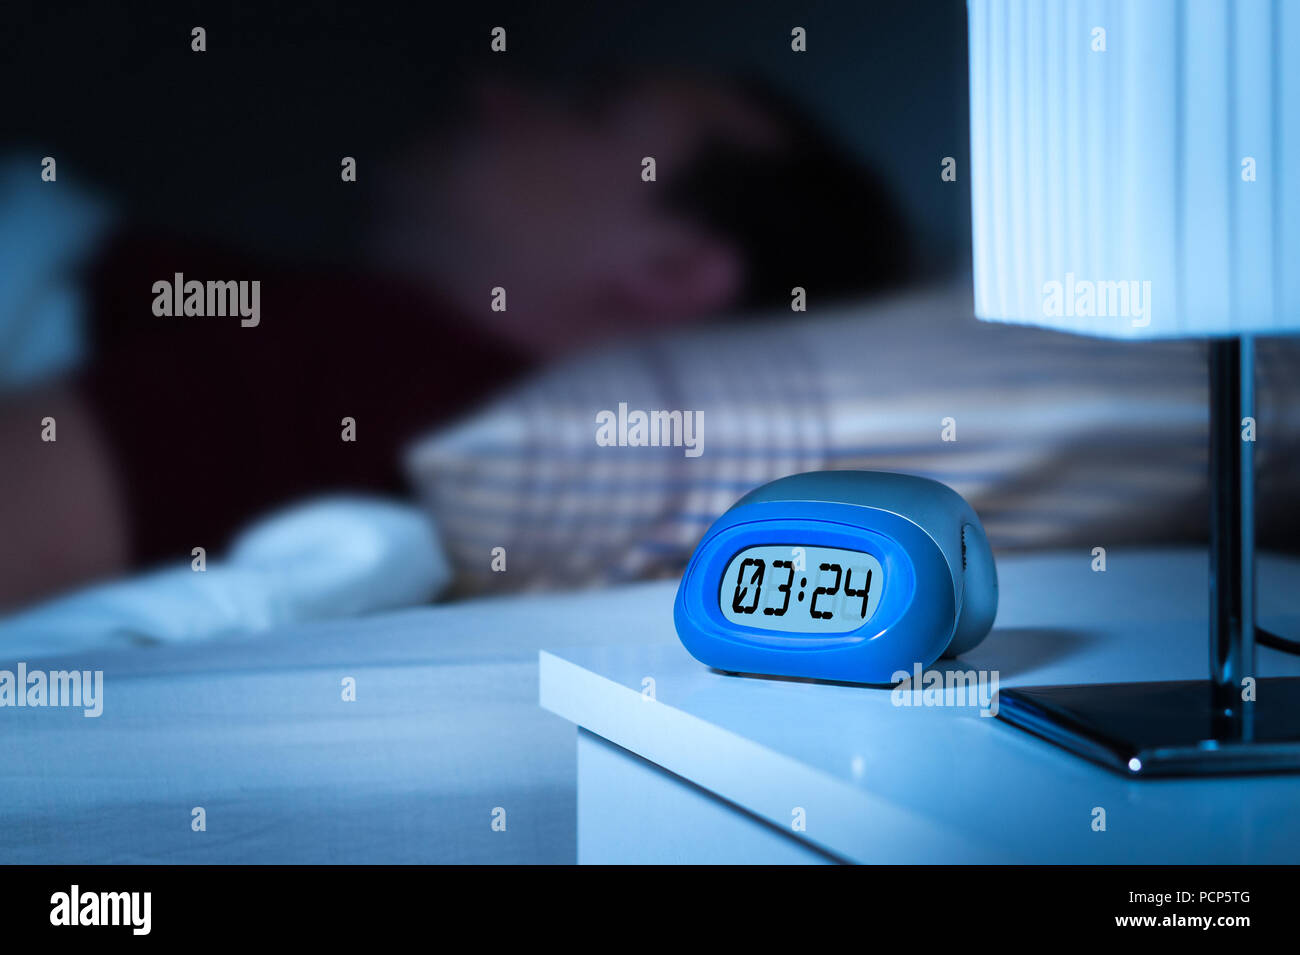 Close Up To Digital Alarm Clock On Nightstand In Bedroom. Man Sleeping In  Bed In The Background. Dreamy Blur Effect.